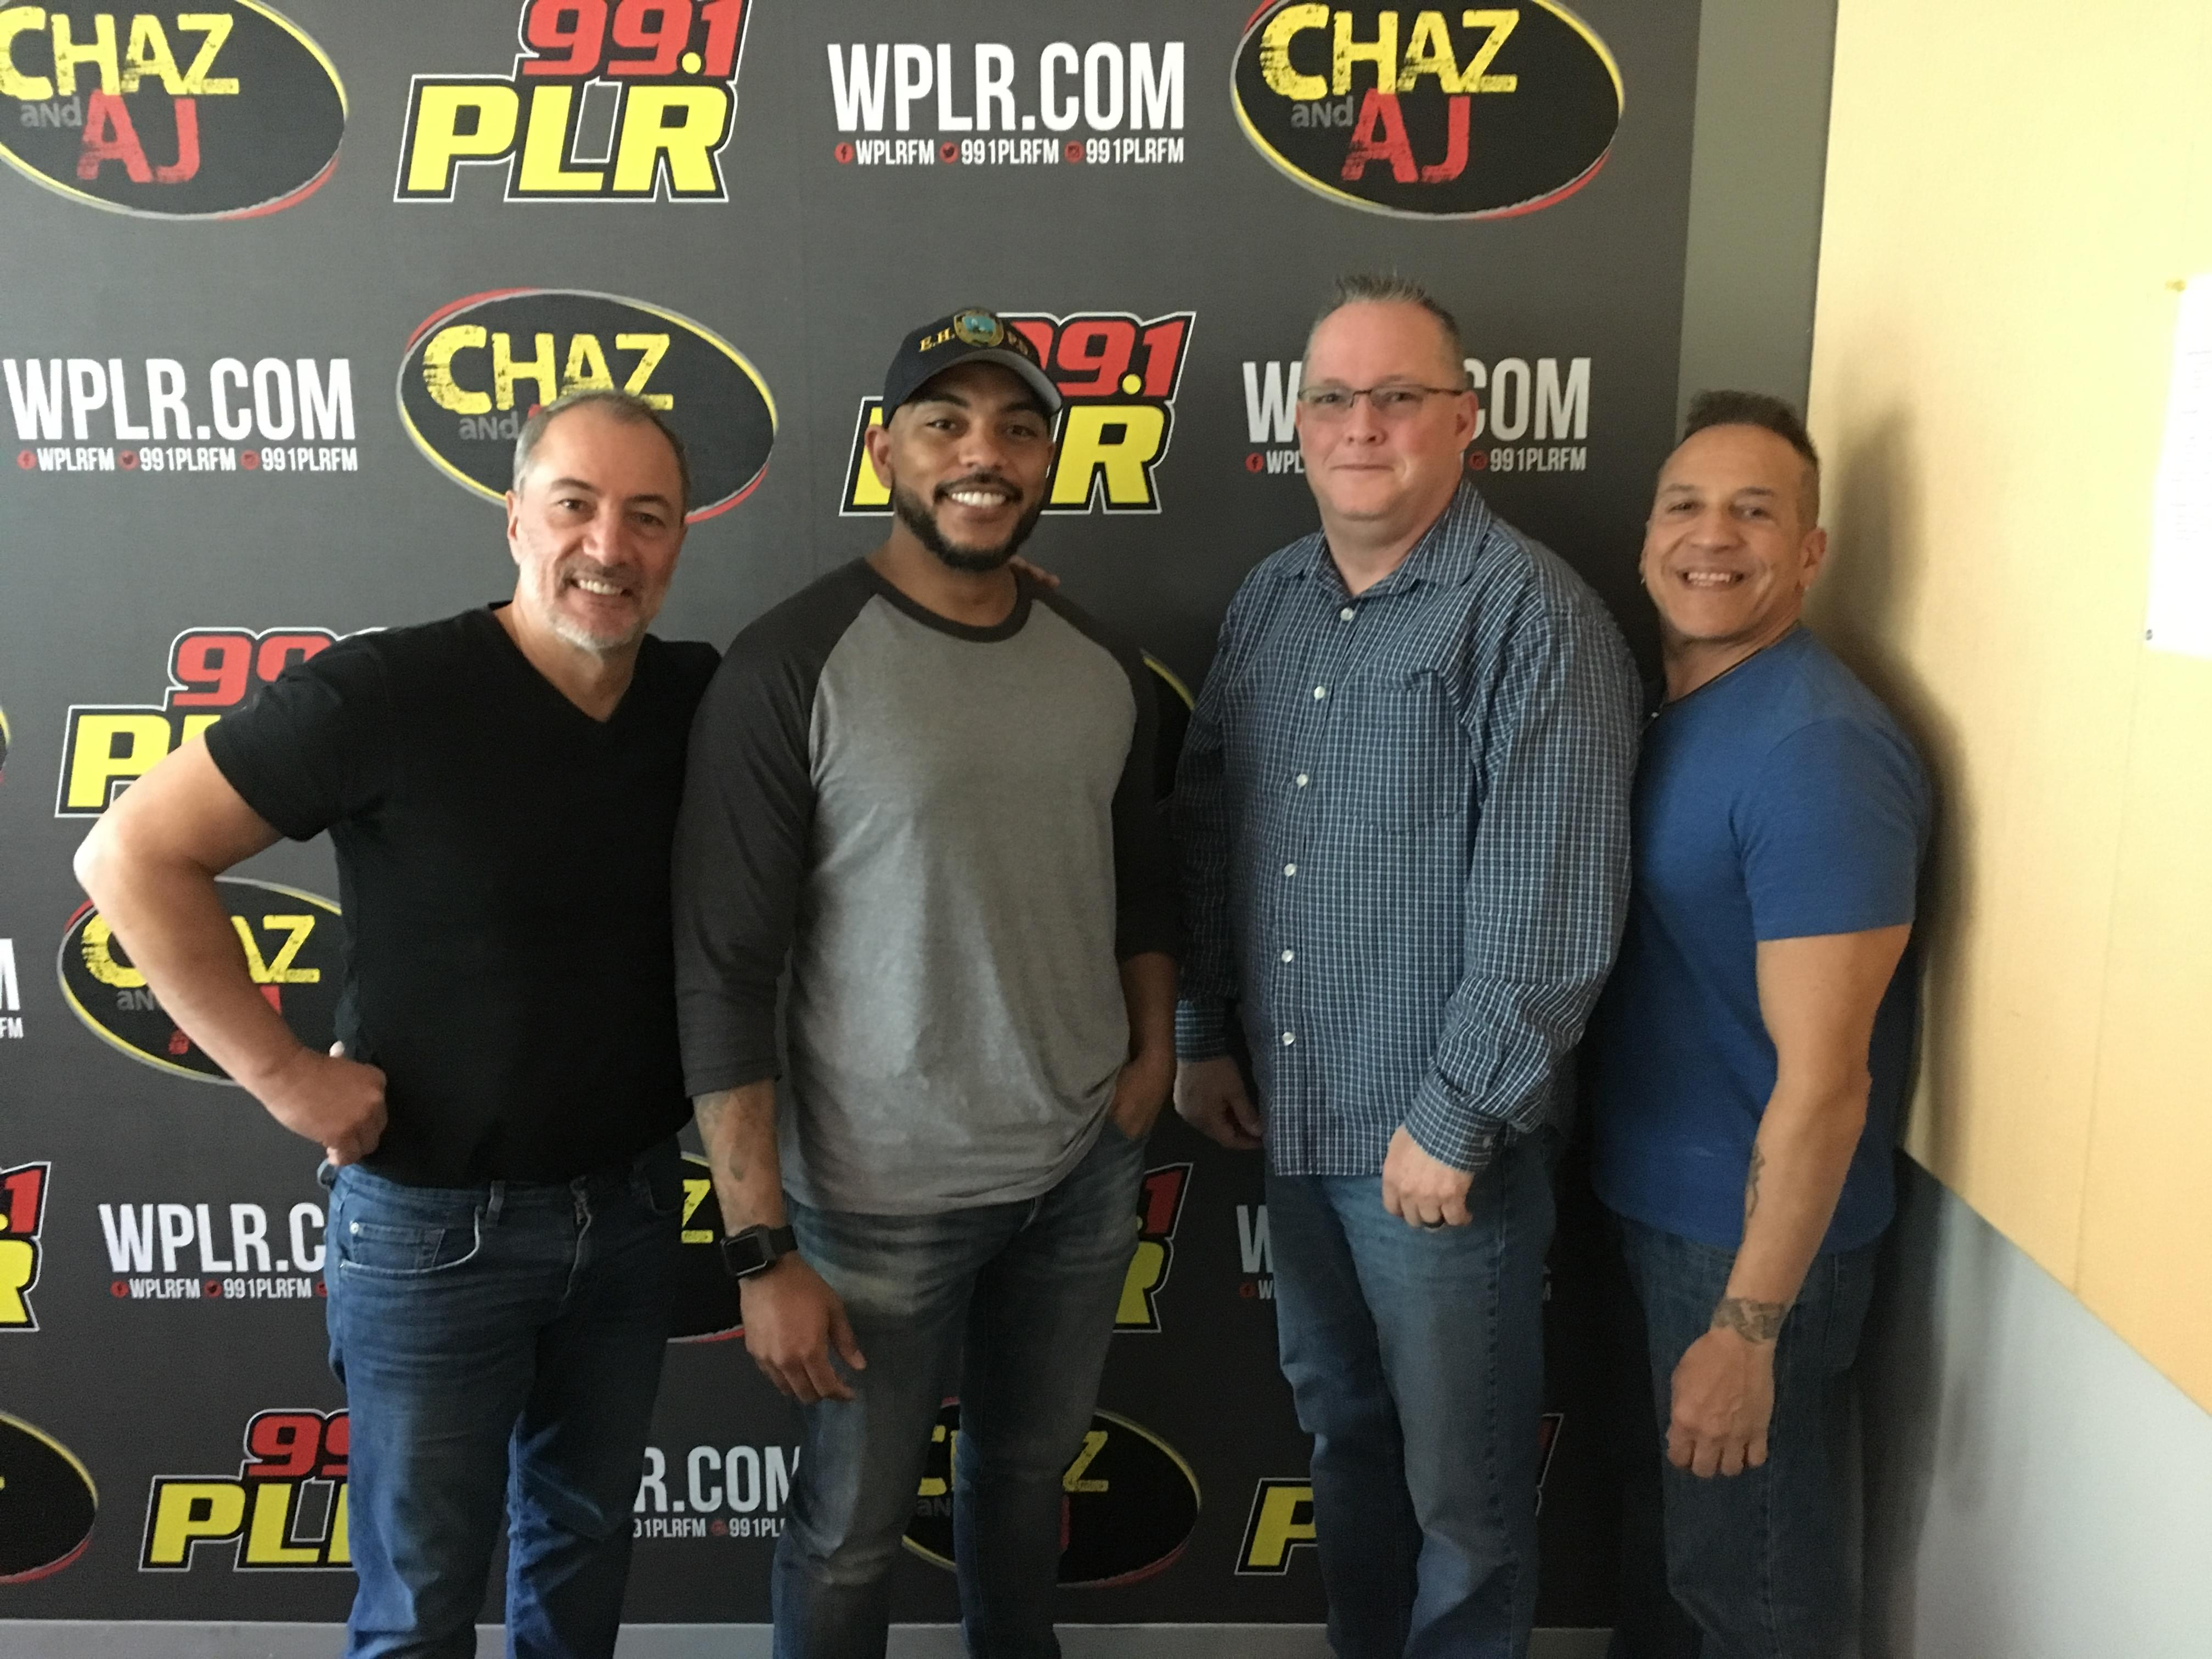 Thursday, April 25: Celebs Leaving Connecticut, The East Haven PD Stops By, NFL Draft, And More!